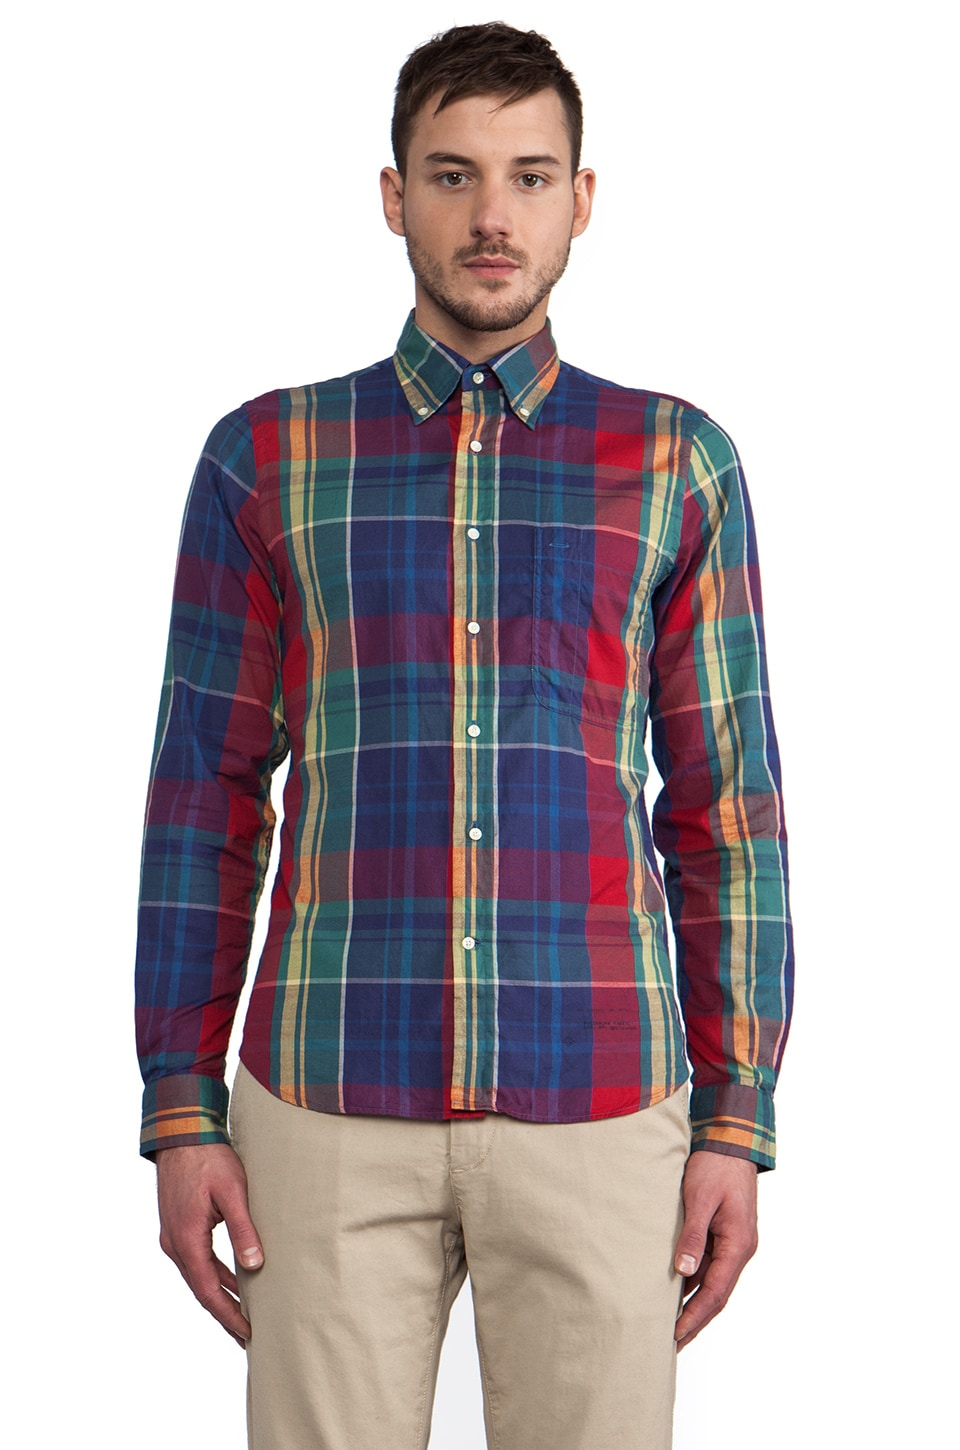 GANT Rugger Windblown Oxford in Multi